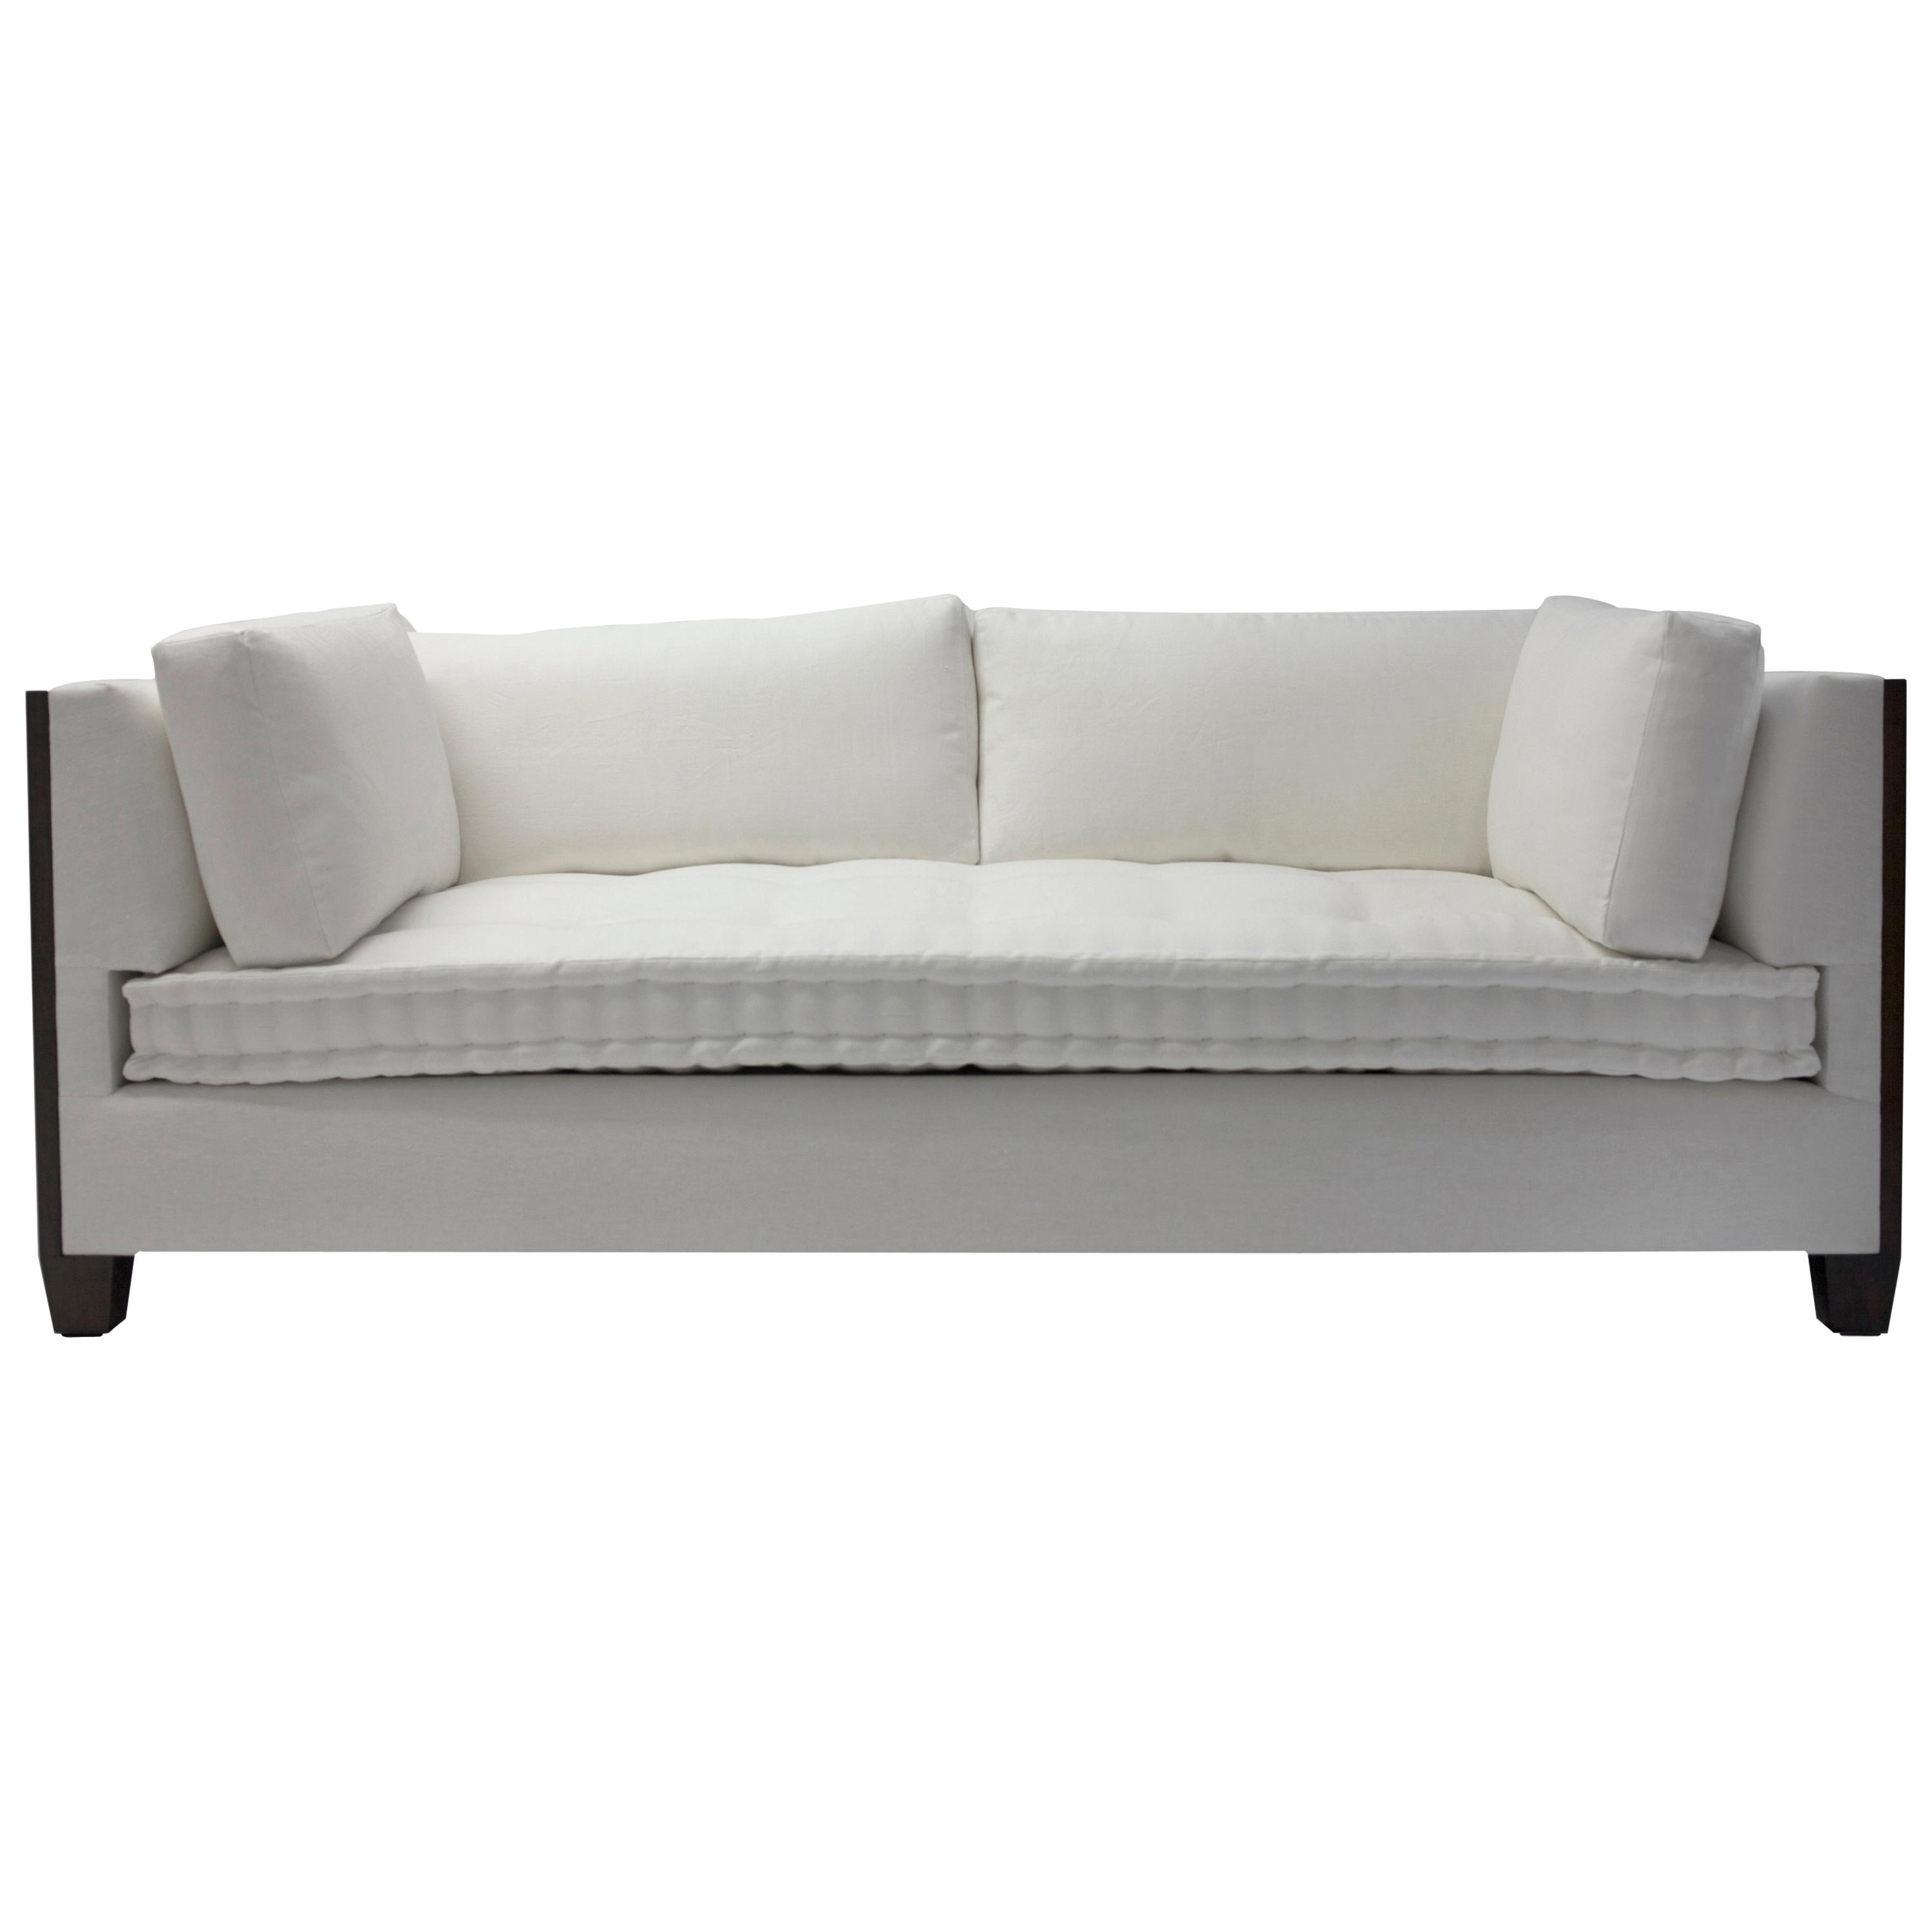 World-Class Custom Sofa With Wood Surround at Arms With Loose Back